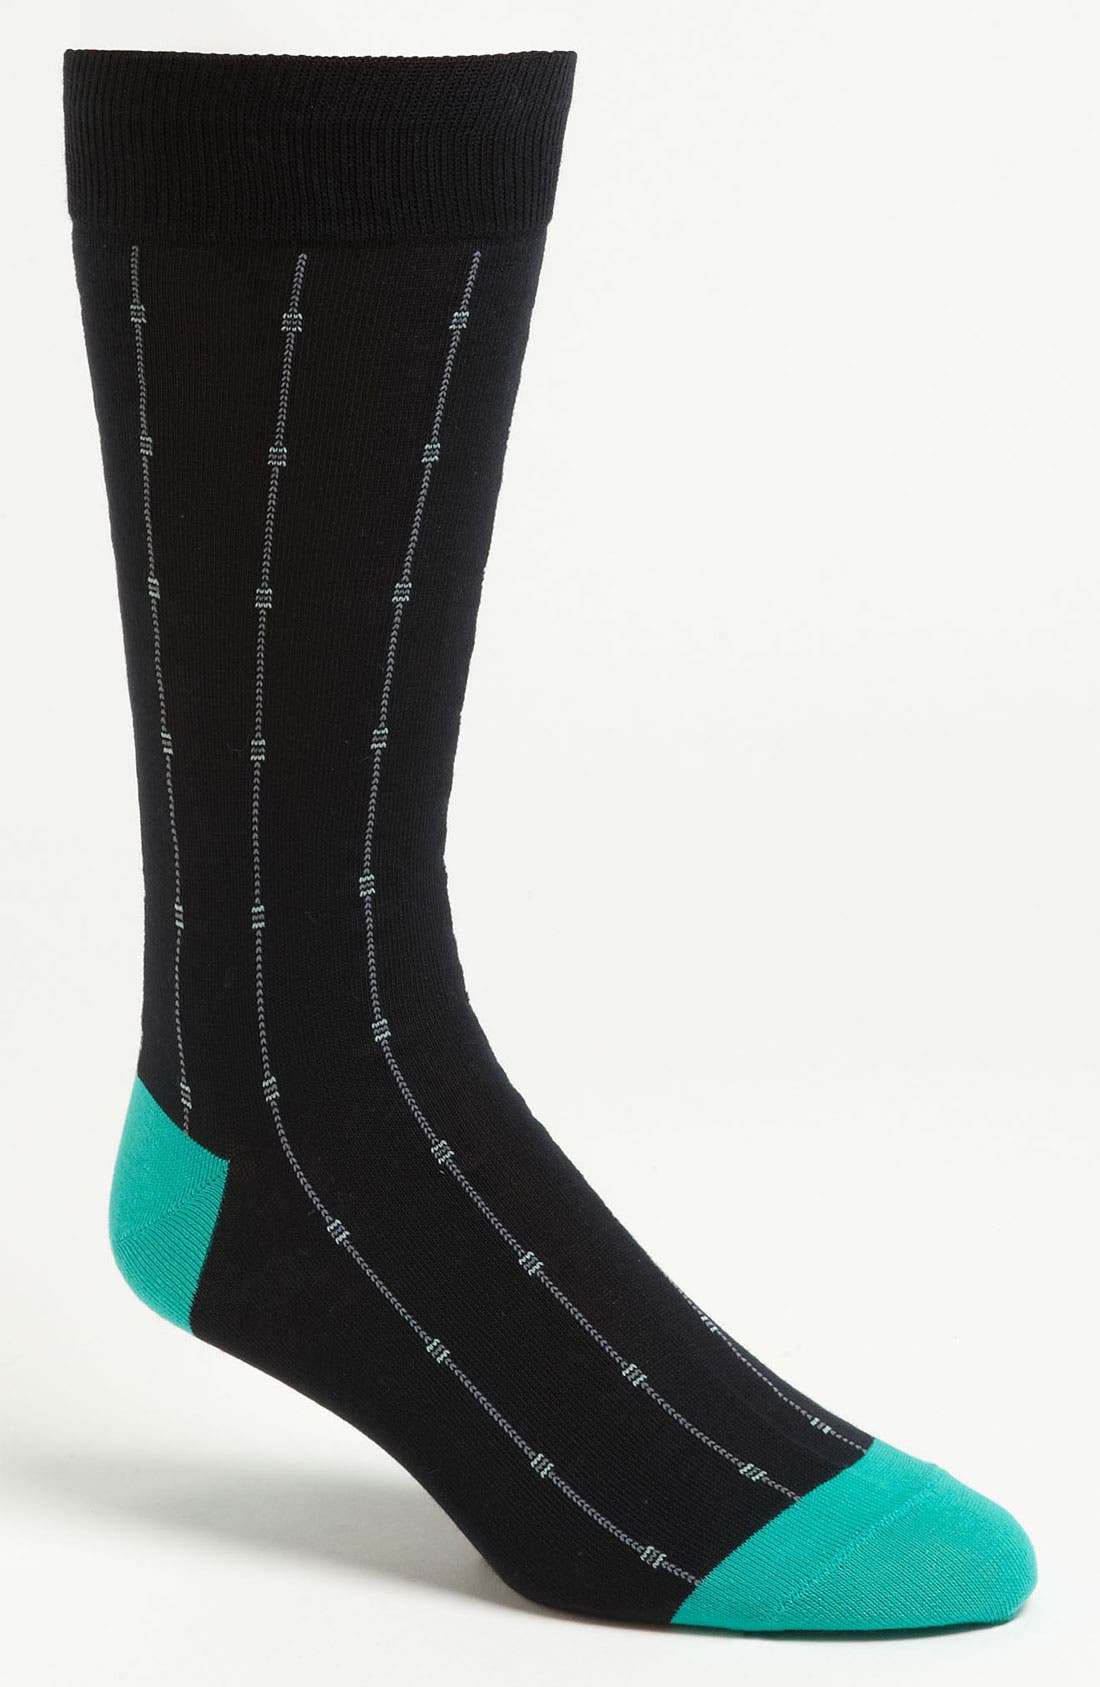 Alternate Image 1 Selected - Cole Haan 'Squares and Pin Stripes' Socks